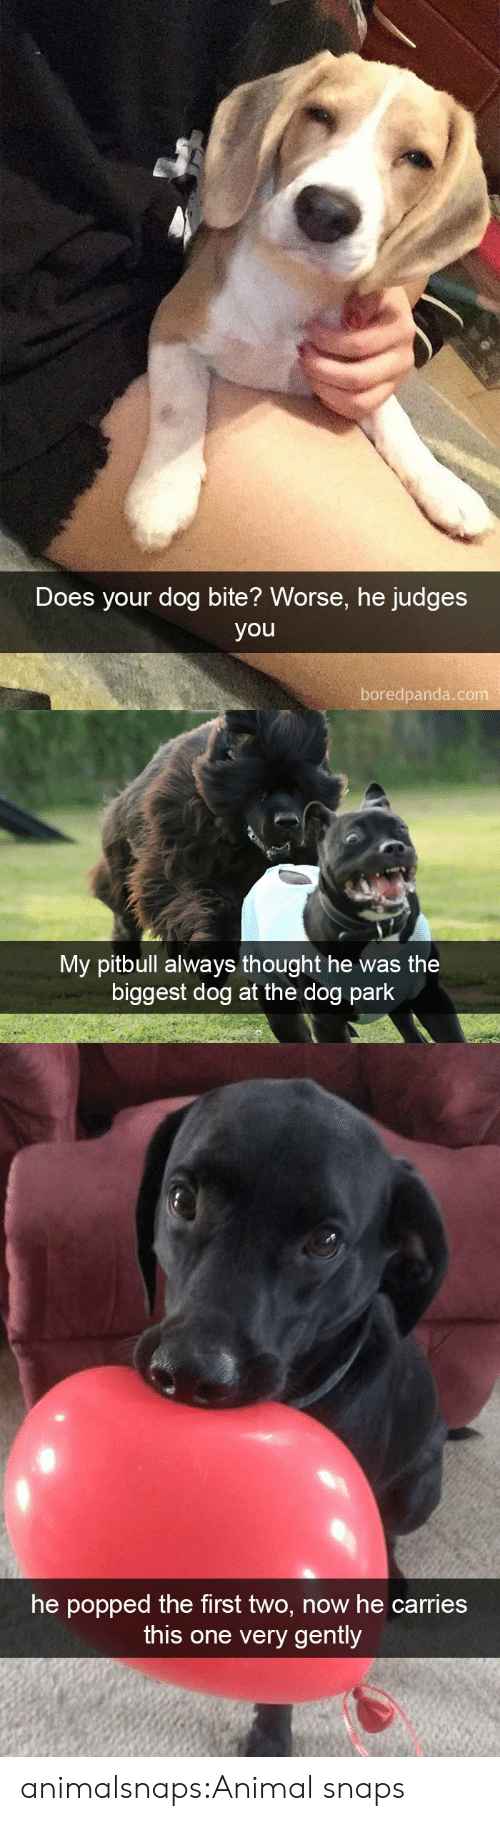 Target, Tumblr, and Pitbull: Does your dog bite? Worse, he judges  you  boredpanda.com   My pitbull always thought he was the  biggest dog at the dog park   he popped the first two, now he carries  this one very gently animalsnaps:Animal snaps